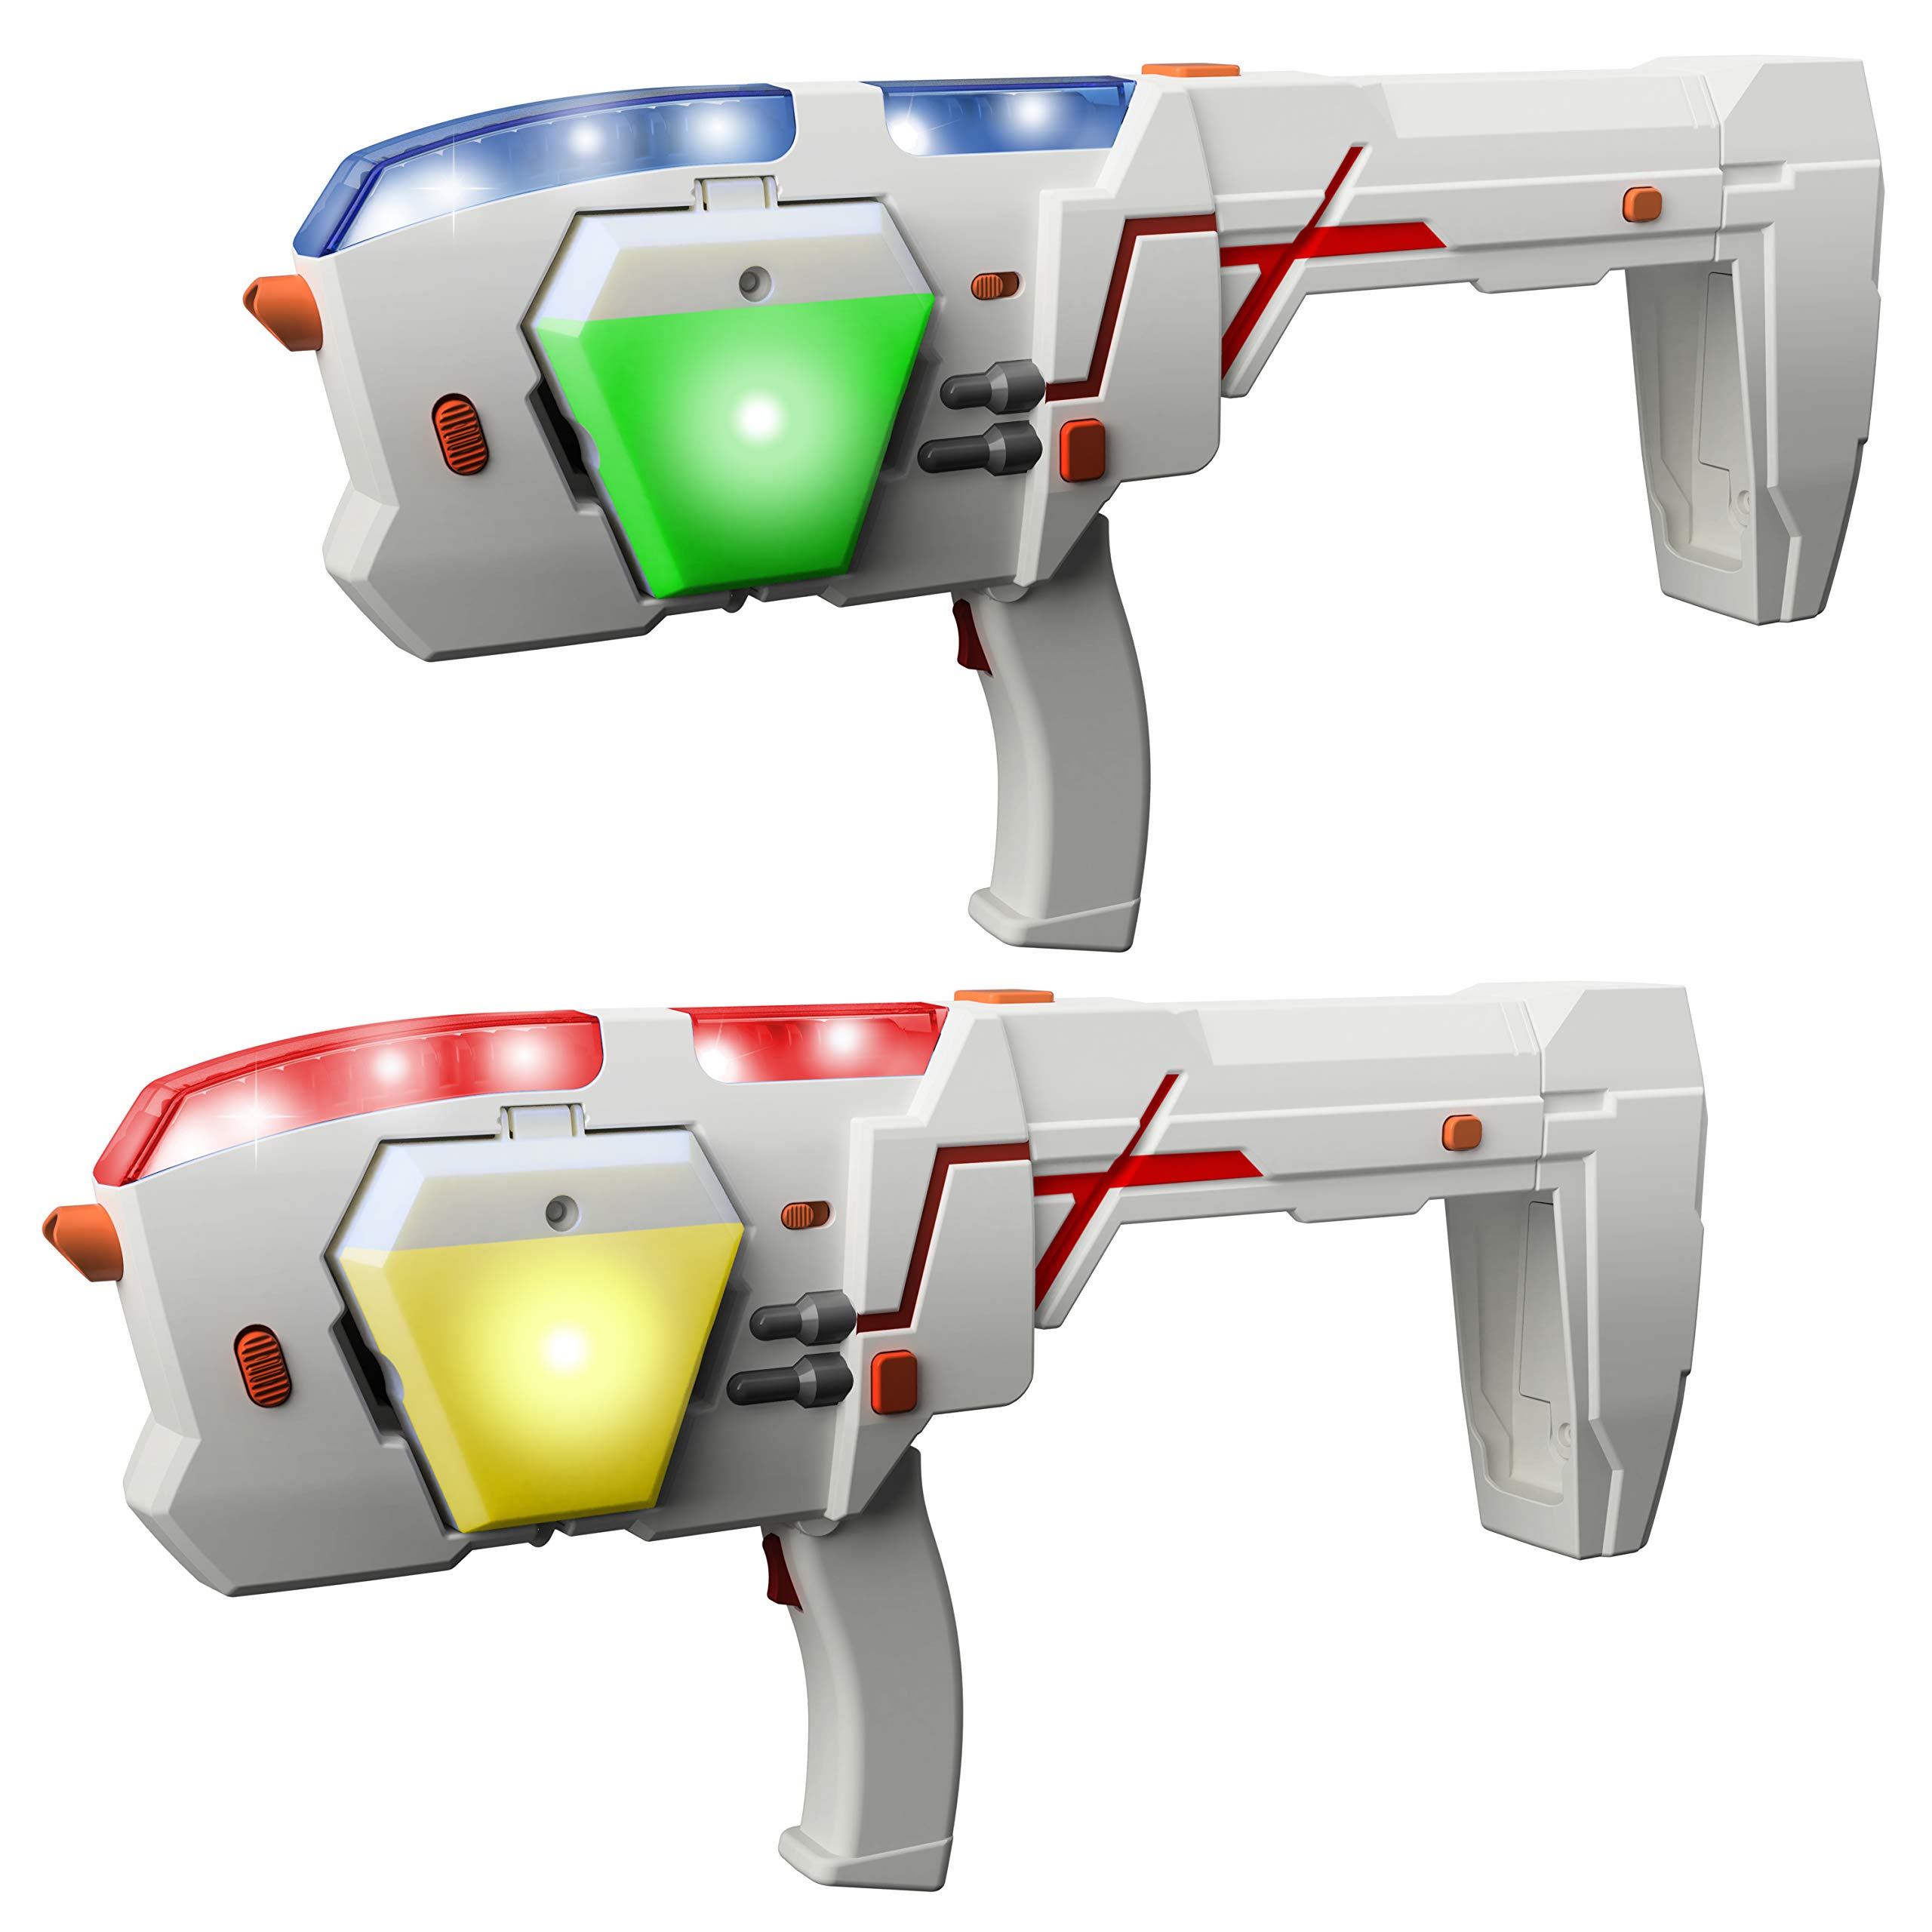 Laser X 88042 Morph Double Pack with 2 Laser Blasters Refurbished